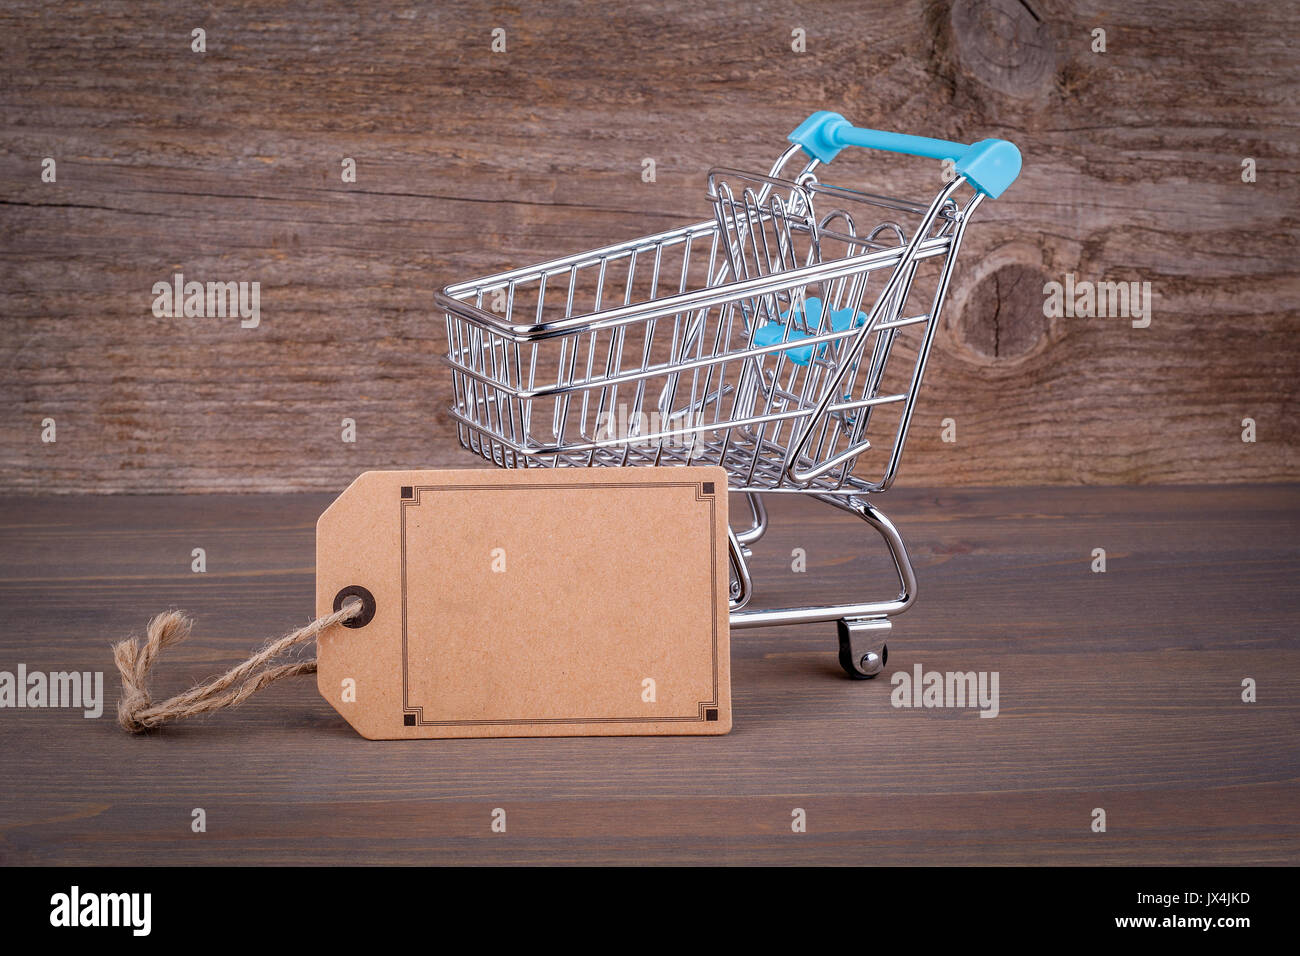 Purchasing cart with a blank price tag on a dark wooden background. - Stock Image